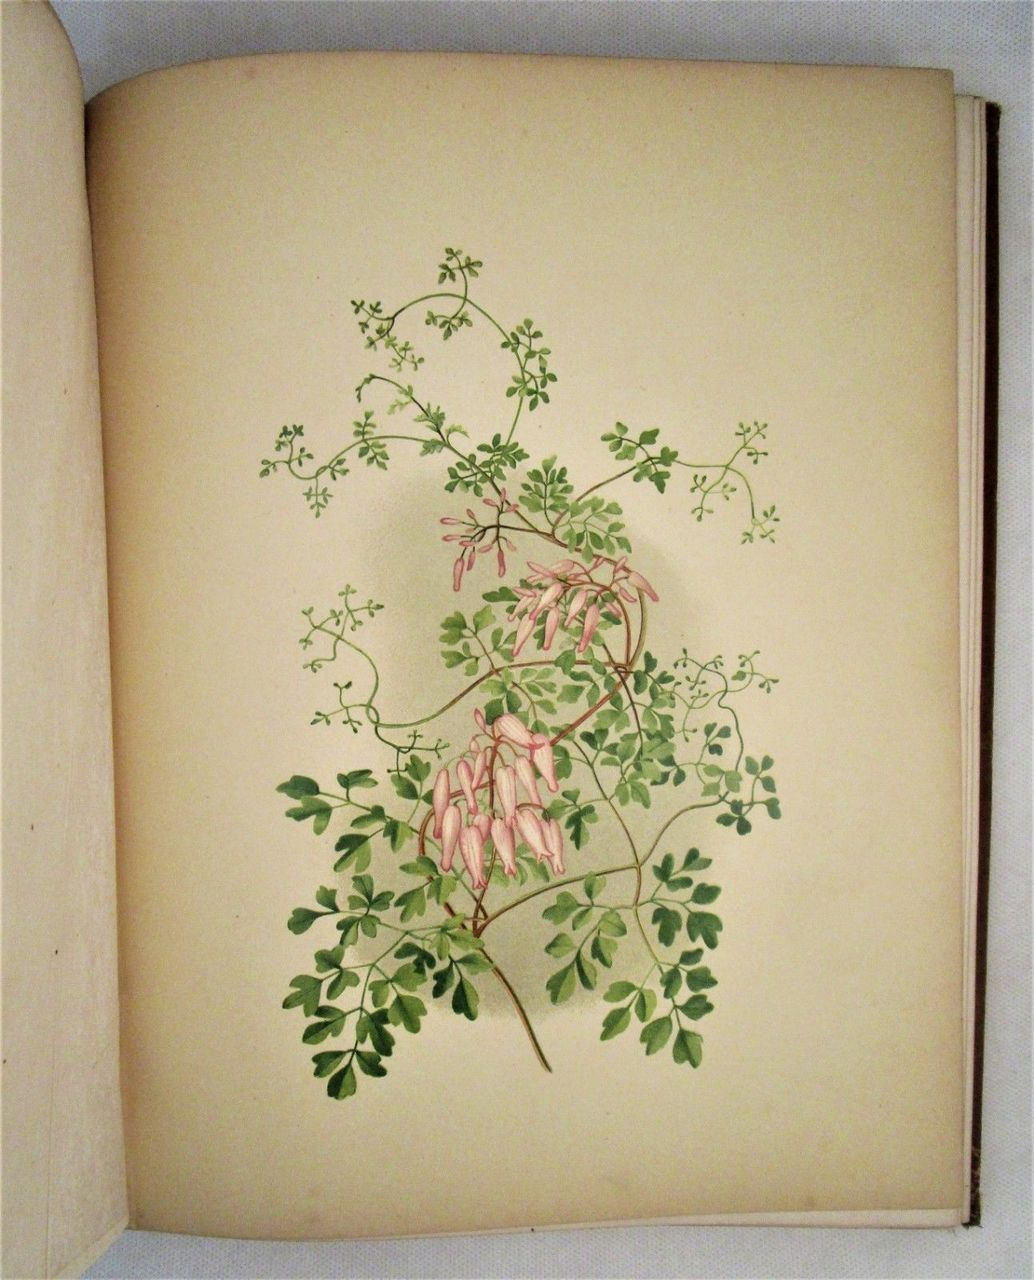 BEAUTIFUL WILDFLOWERS OF AMERICA, FROM ORIGINAL WATER-COLOR DRAWINGS AFTER NATURE, by Isaac Sprague & AB Hervey  - 1882